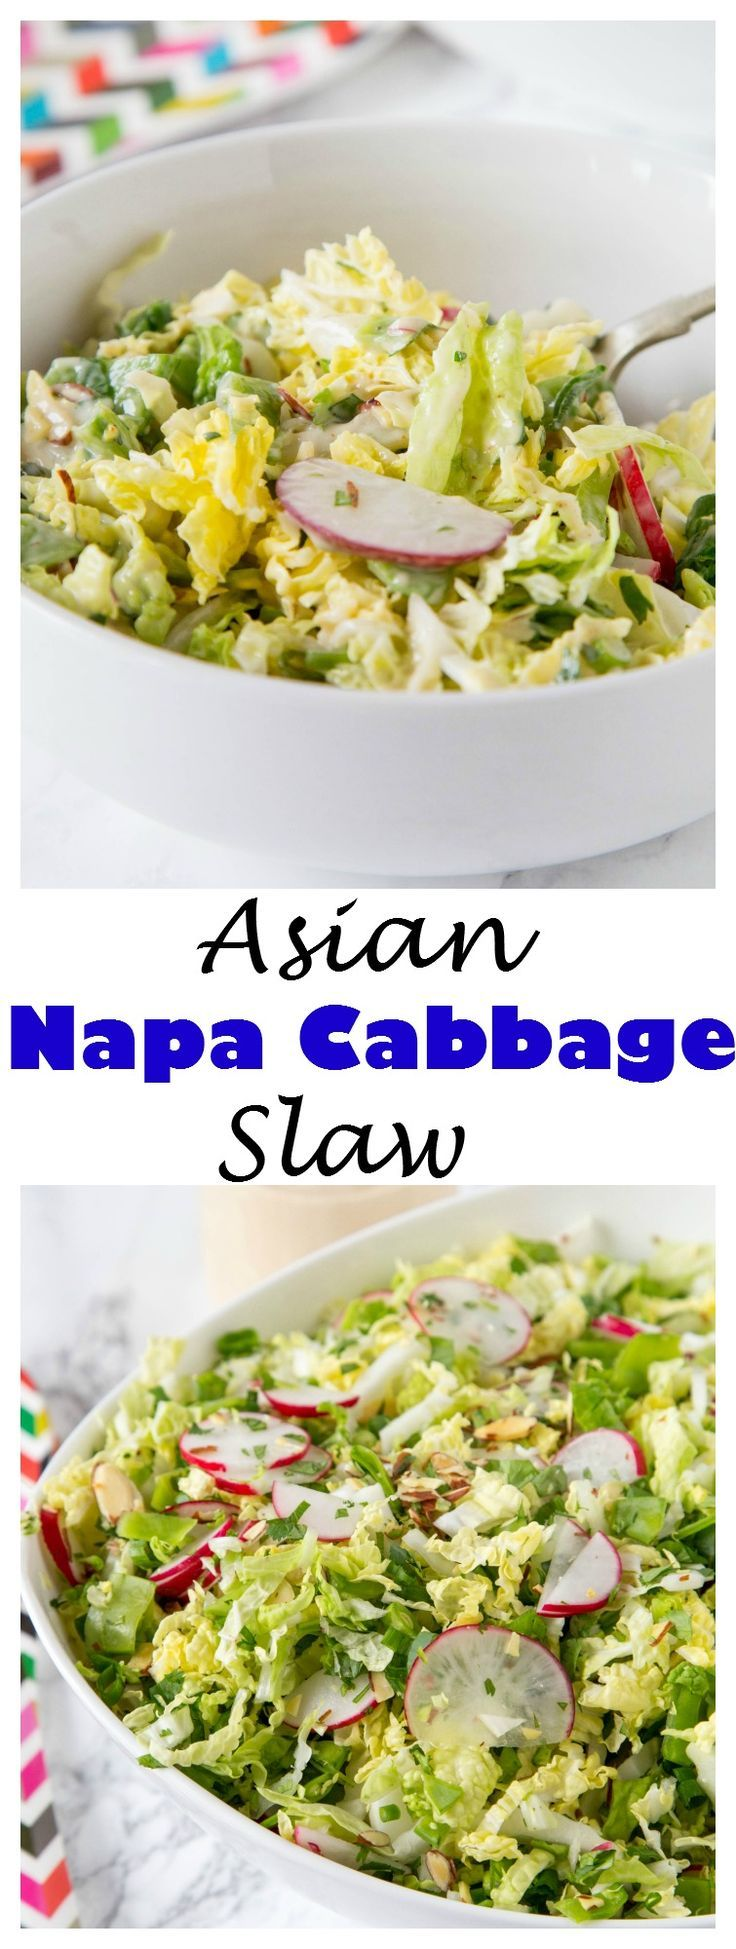 Best 25+ Napa cabbage recipes ideas only on Pinterest ...